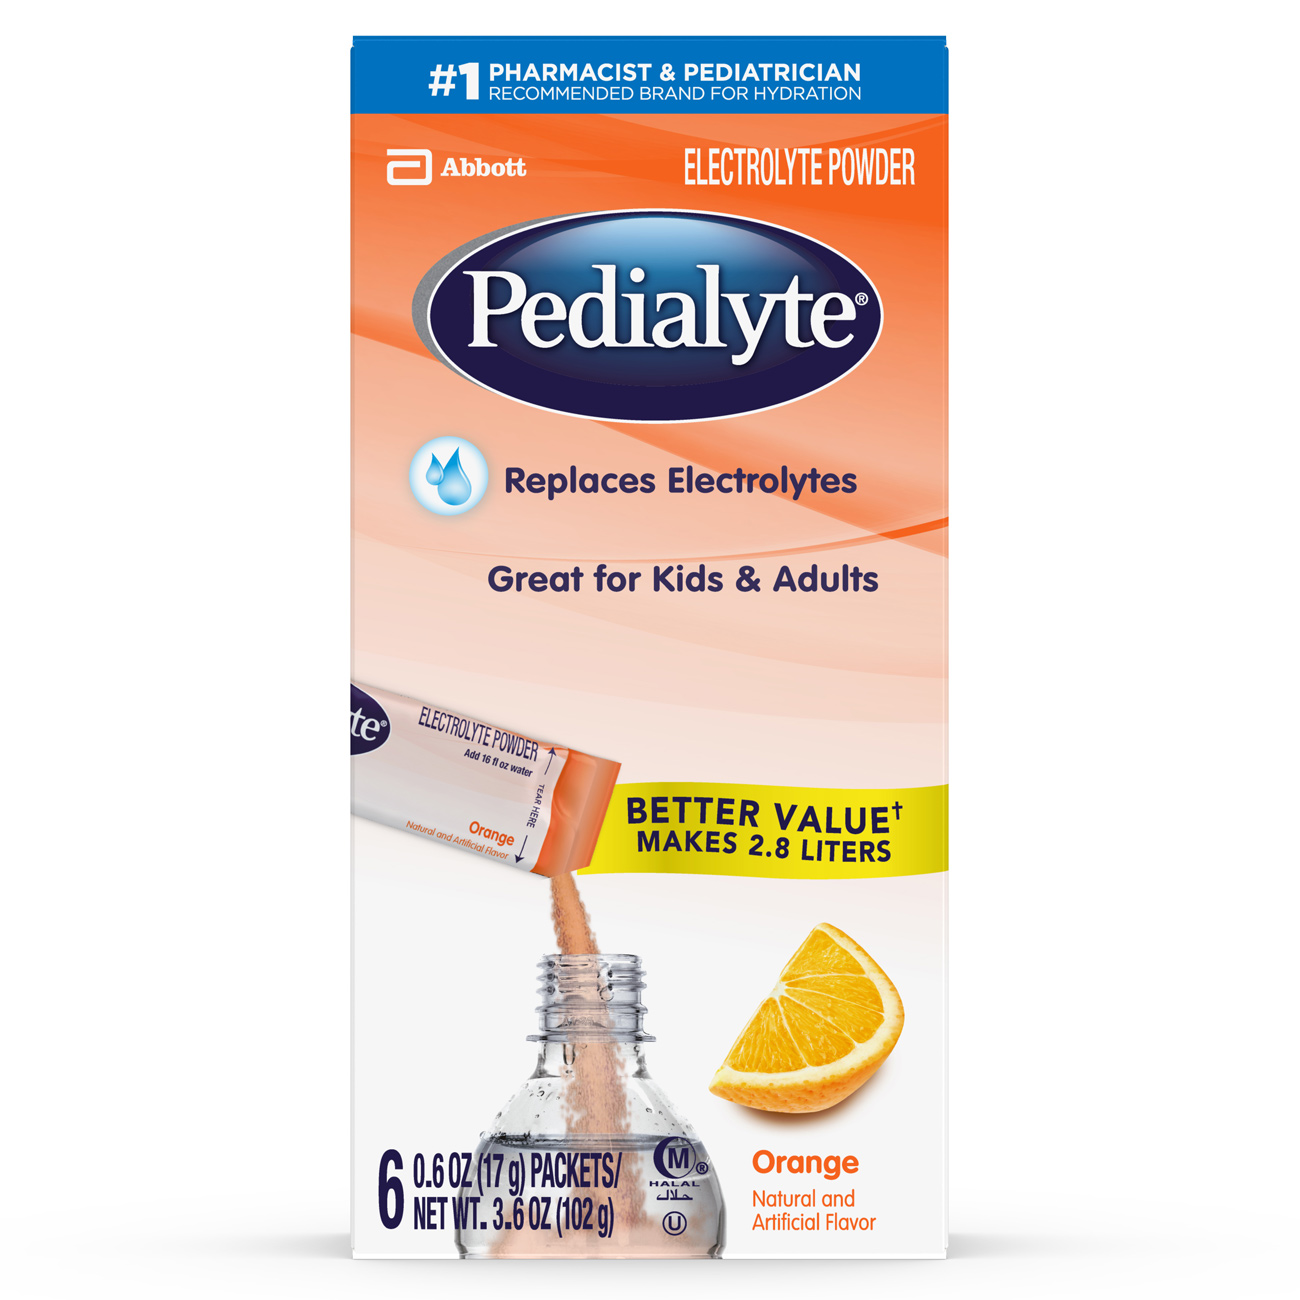 Pedialyte Electrolyte Powder, Electrolyte Drink, Orange, Powder Sticks, 0.6 Ounce, 36 Count